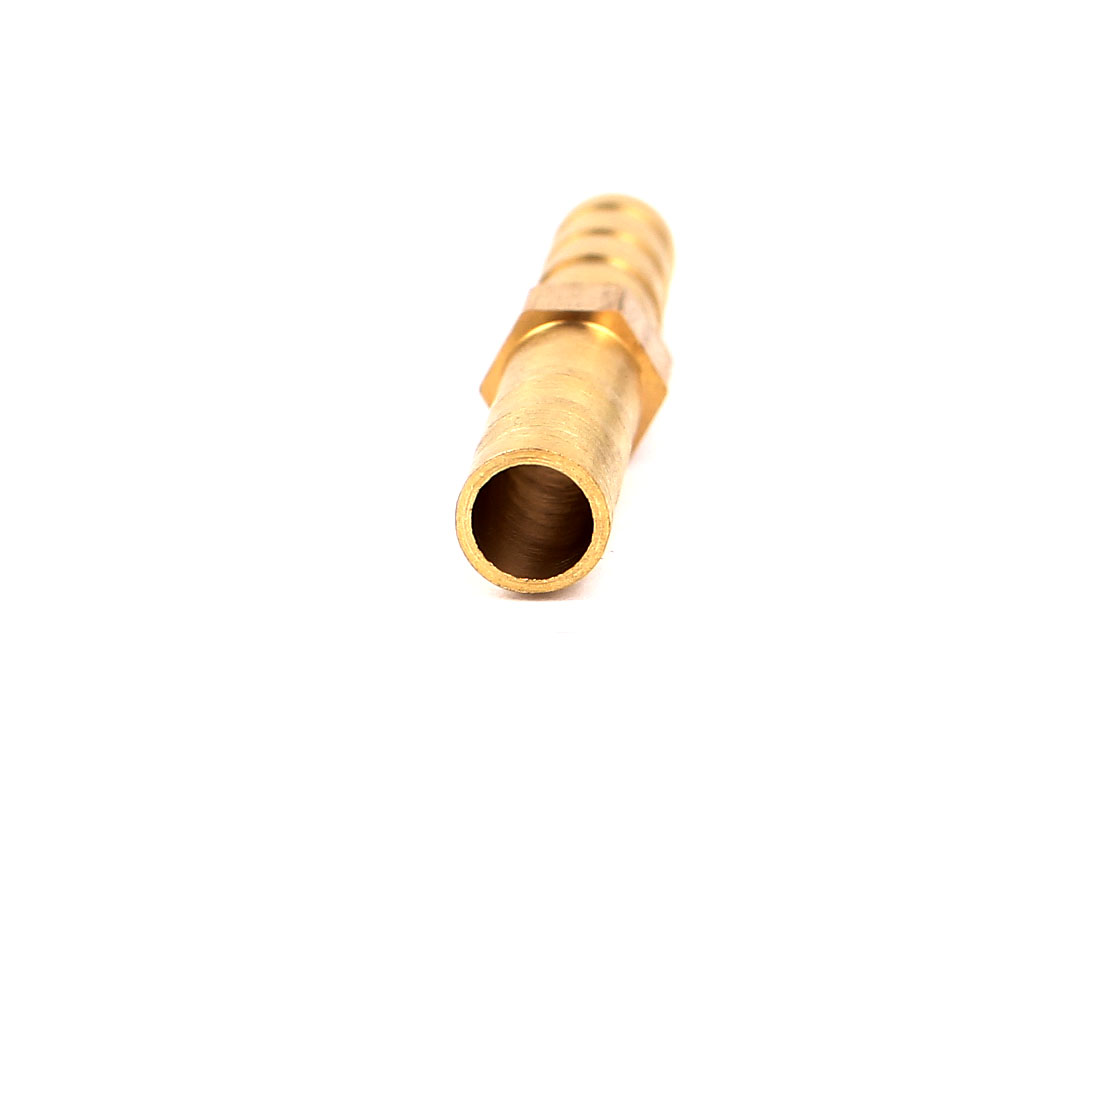 6mm Air Water Gas Brass Straight Hose Connector Joiner Gold Tone 5pcs - image 1 of 2